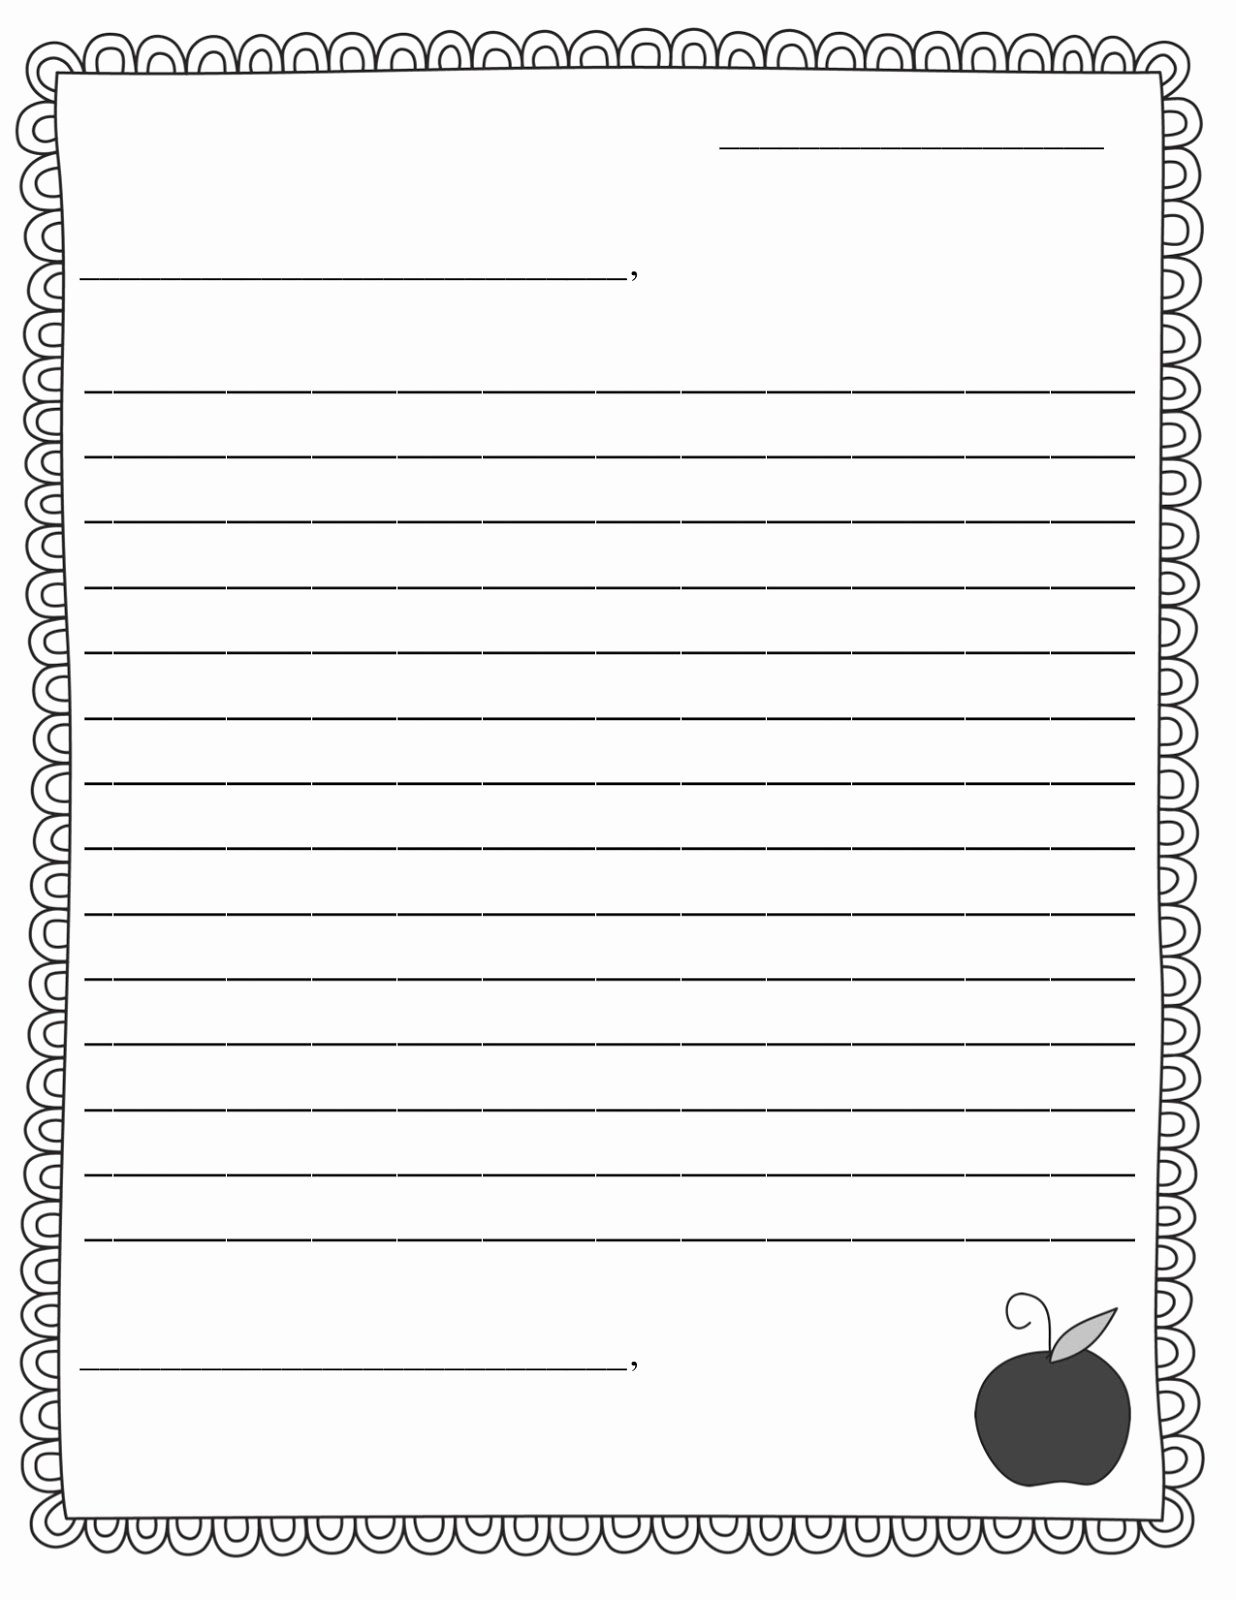 Pen Pal Letter format Awesome Pen Pal News Friendly Letter Freebie Teacher Idea Factory